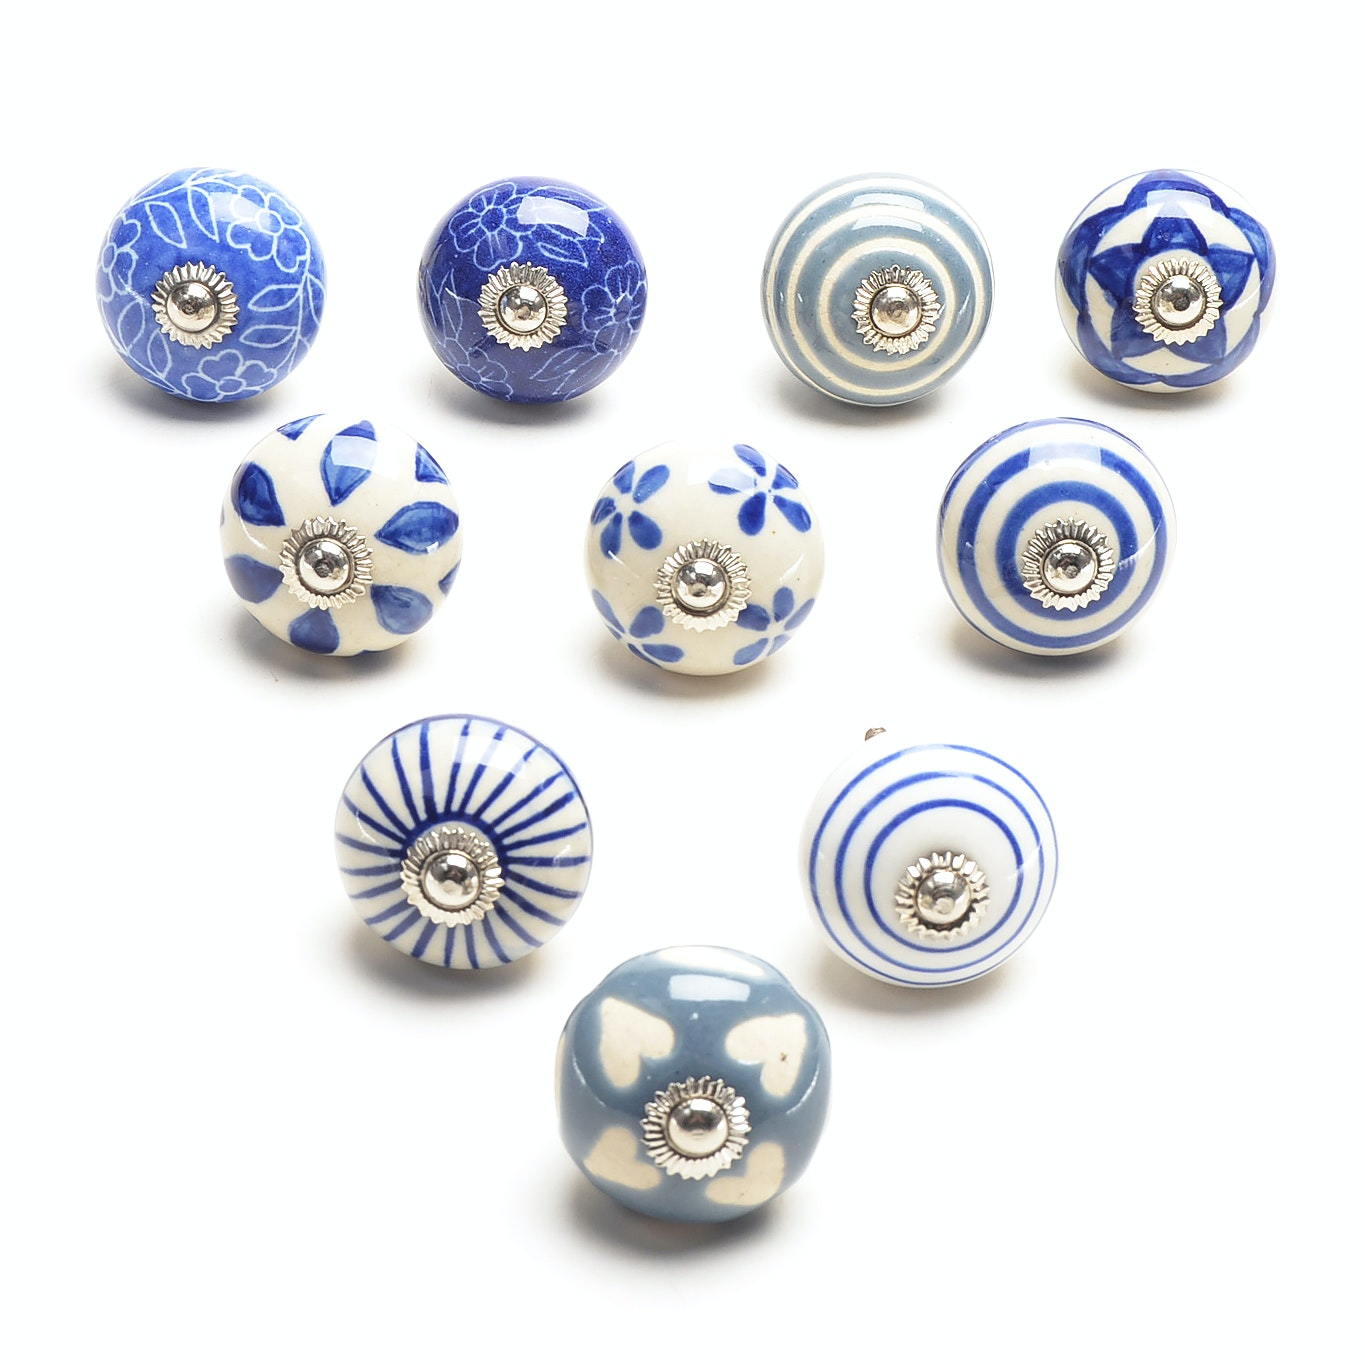 Hand-painted Ceramic Cabinet Drawer Handles